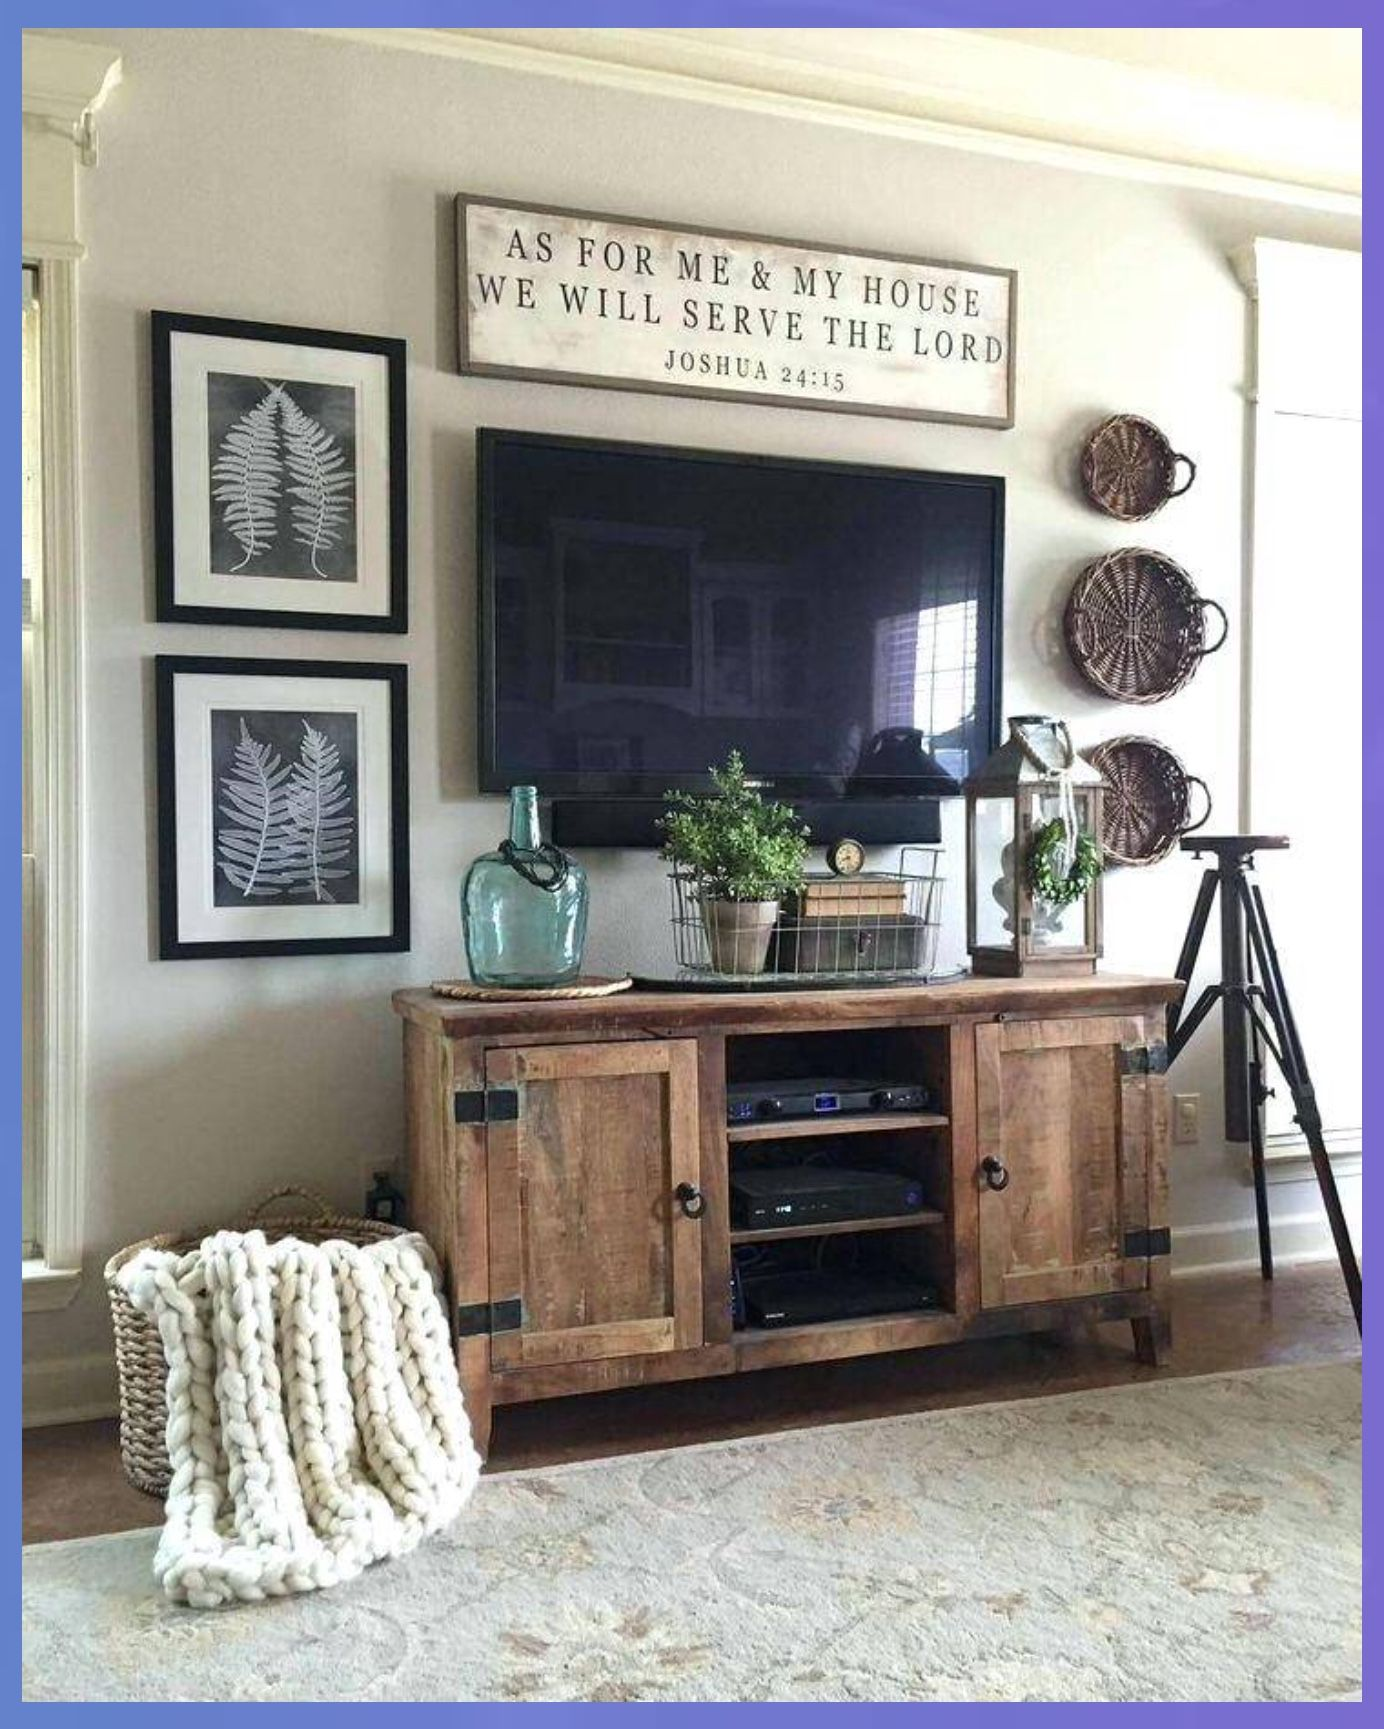 Living Room Decorating Modern Rustic Wall Decor Ideas Country Farmhouse Glam Home Design Farm House Living Room Farmhouse Decor Living Room Rustic Living Room